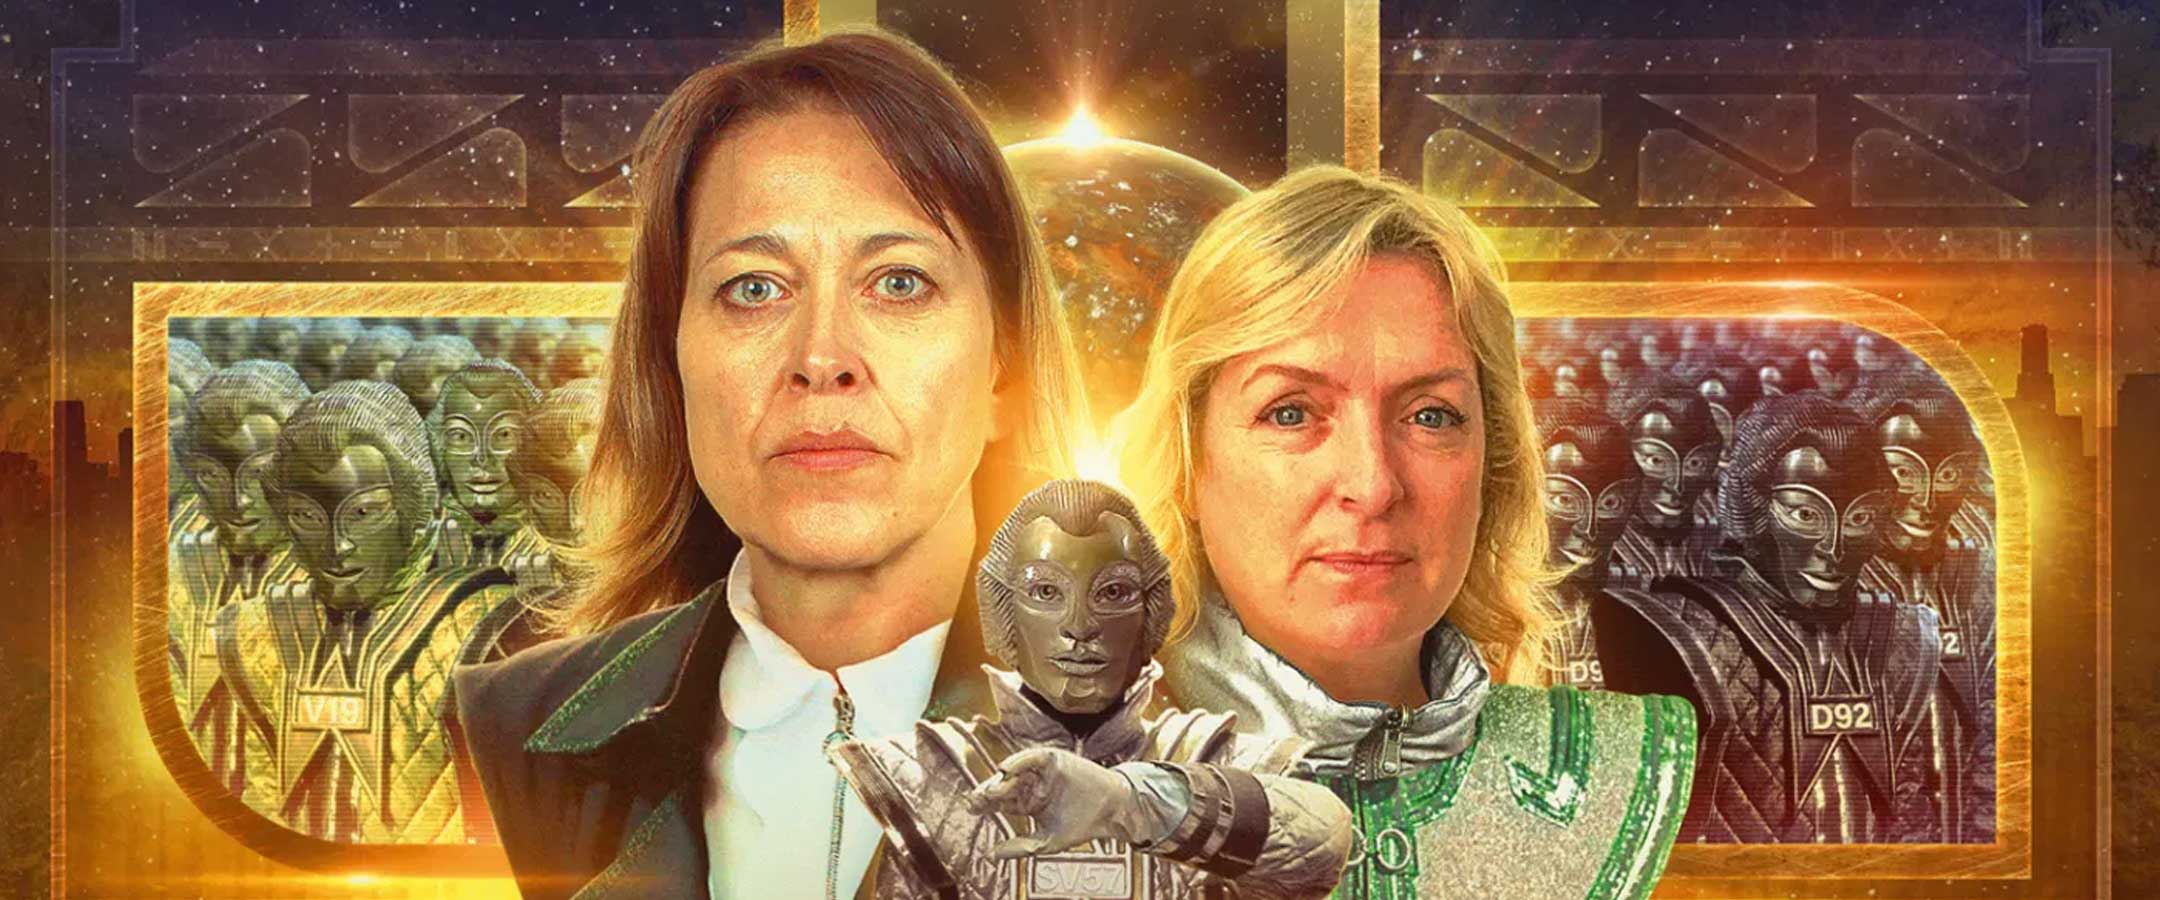 Big Finish - The Robots - Volume 1 Review